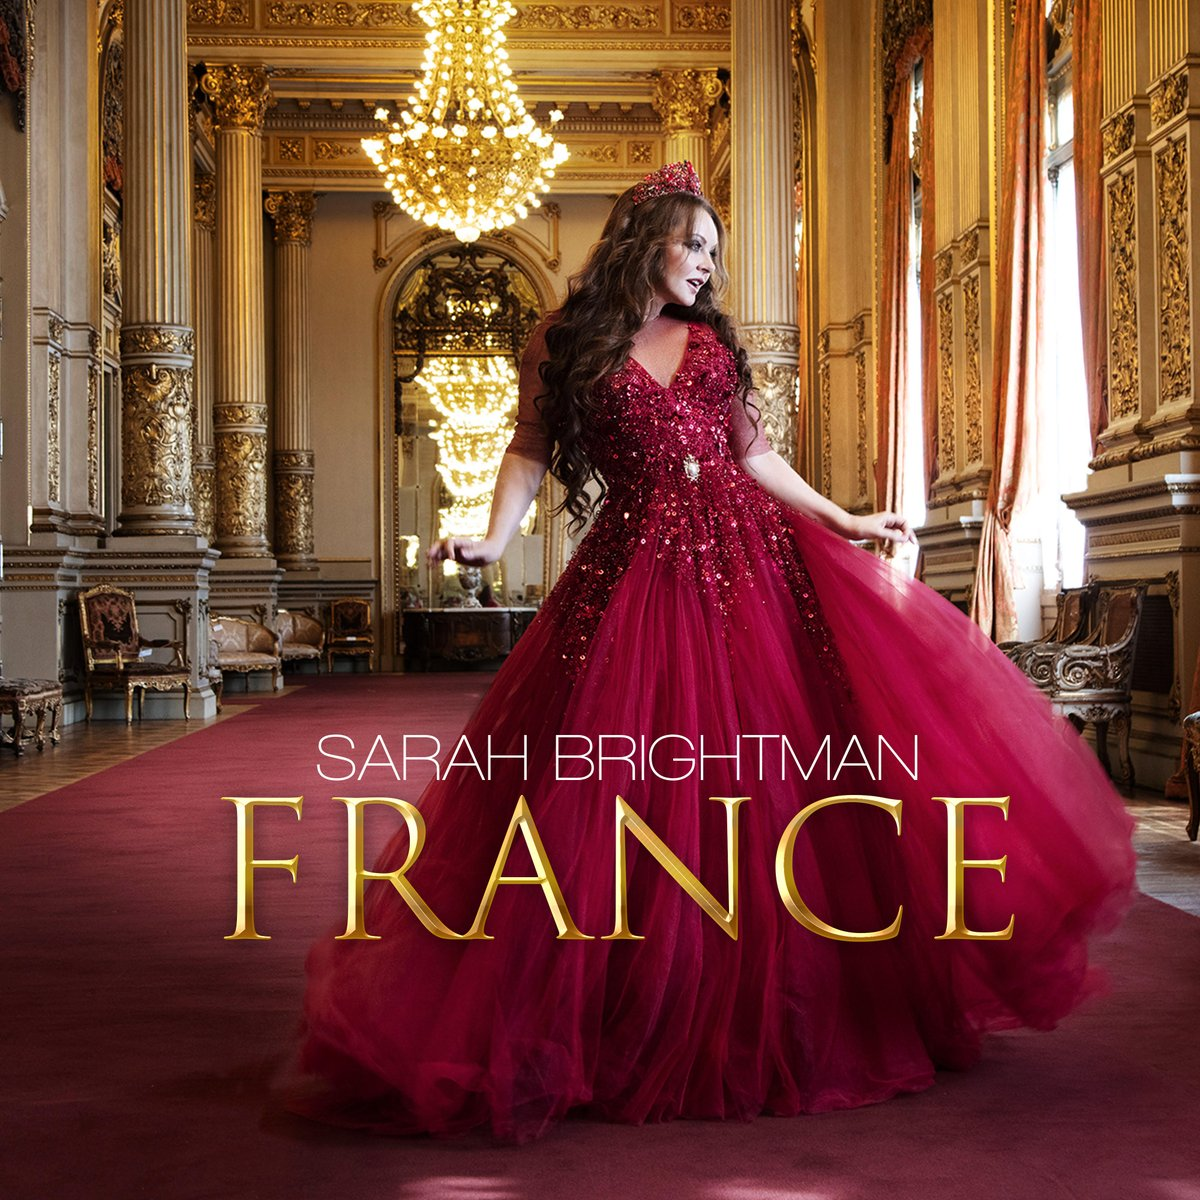 """Read this article in 'Oise Hebdo' about the stunning filming locations featured in the video for Sarah's duet with @florentpagny, """"Just Show Me How to Love You,"""" from her album 'FRANCE': https://t.co/h5ga8fWHXj  'FRANCE' is available here: https://t.co/hEJglnHgXf https://t.co/QLJZDCt3EL"""